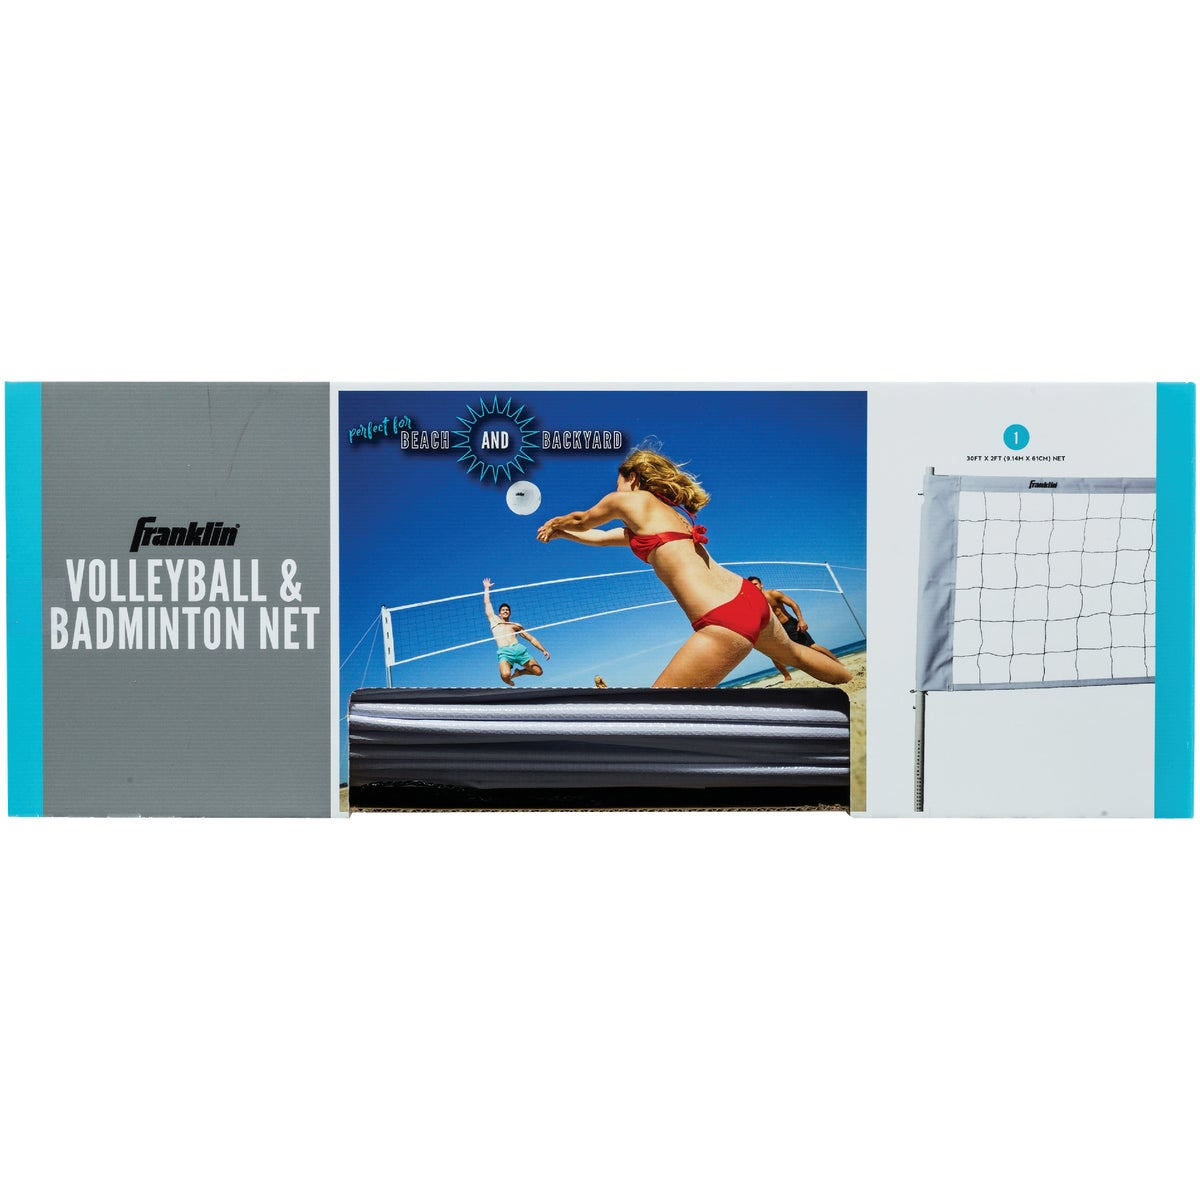 VOLLEYBALL NET - 52620 by Franklin Sports